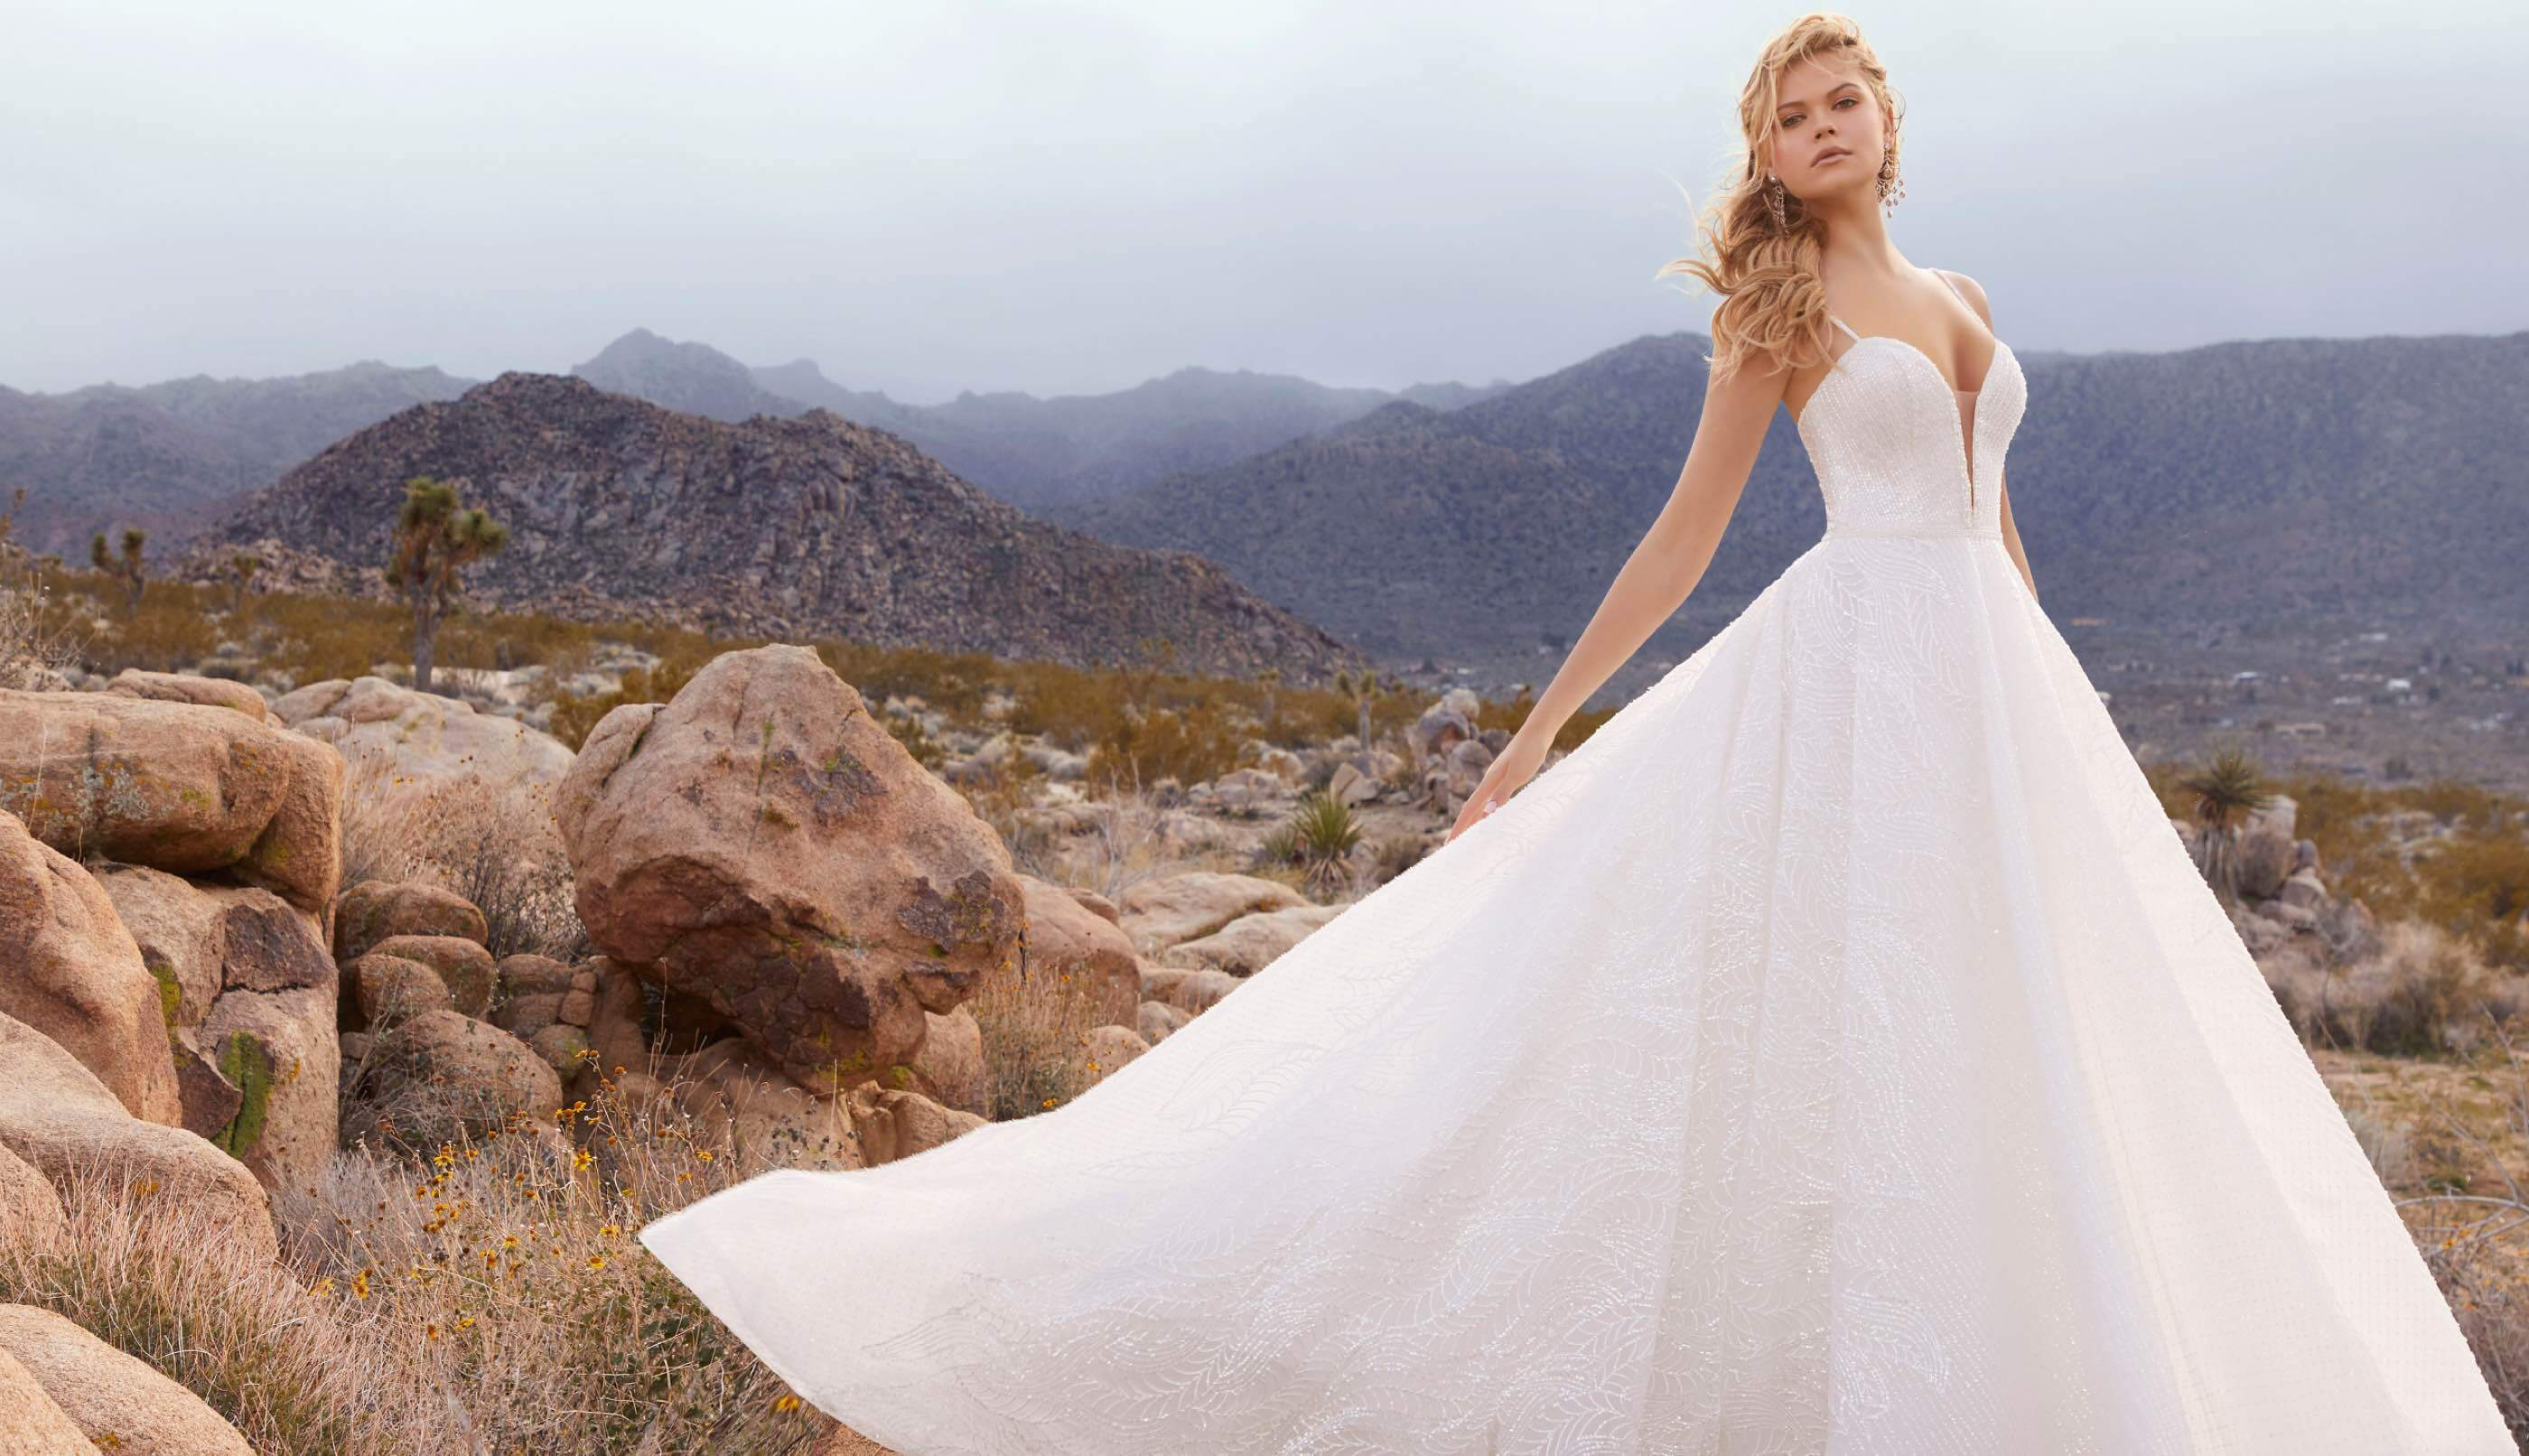 Model wearing ball gown wedding dress in desert background